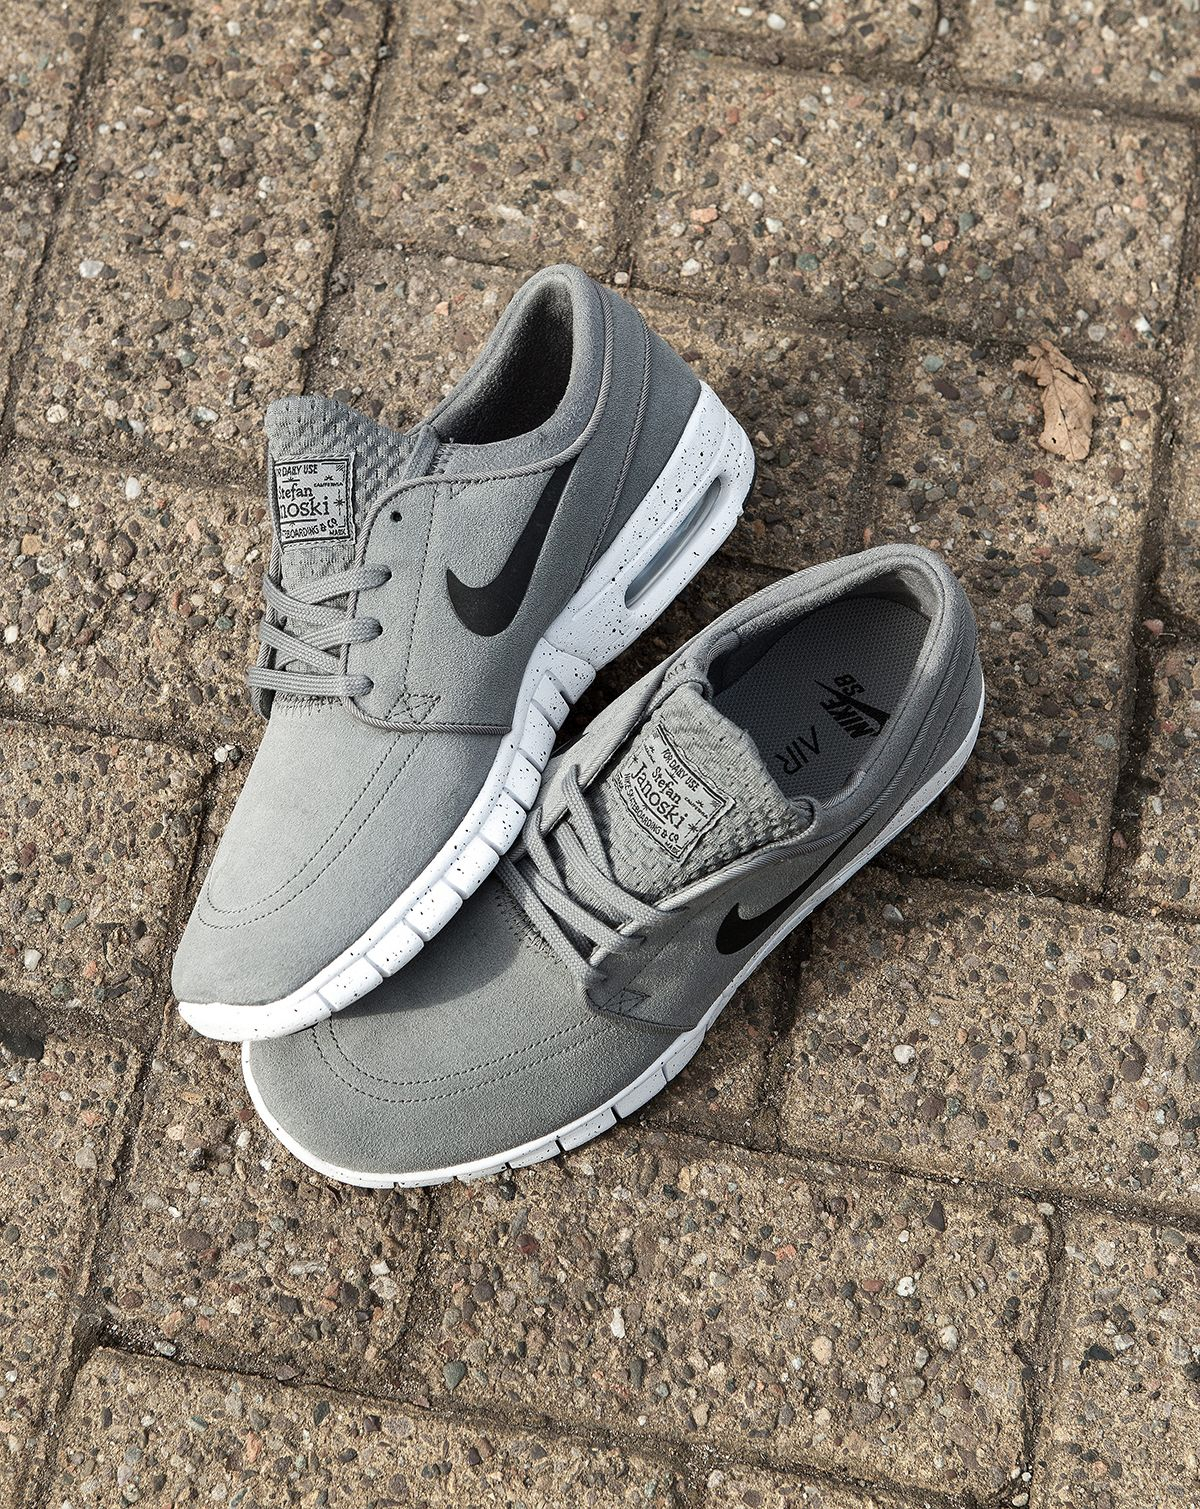 quality design 1de5a 17130 The Nike Janoski Air Max can do no wrong. The skate staple gets a clean  grey suede update, ready for winter.